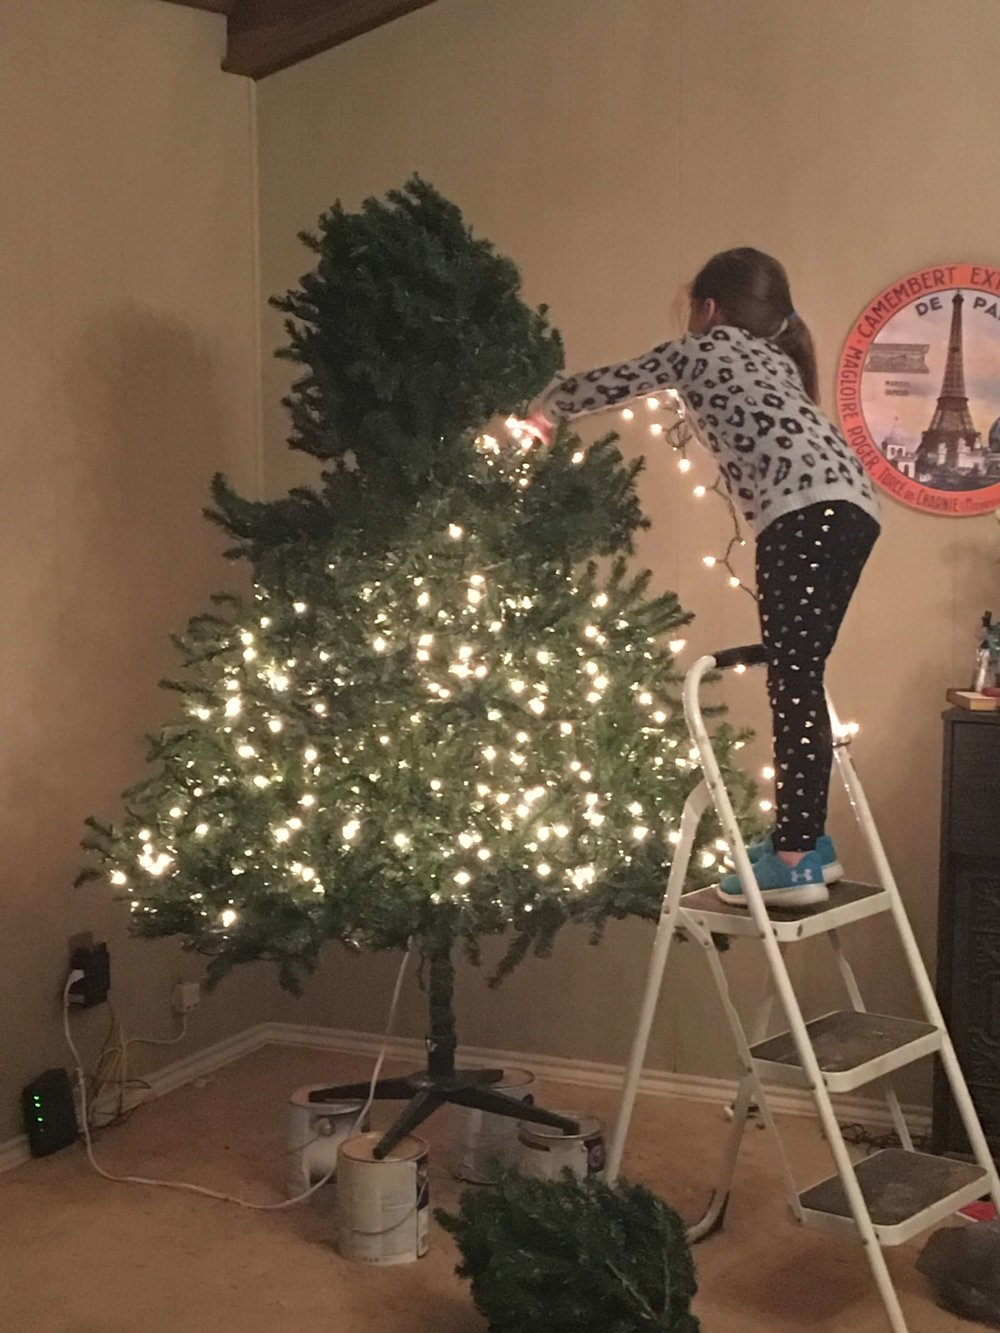 This is the only BEFORE the flocking picture that I had. This is my daughter helping me add lights to the tree.